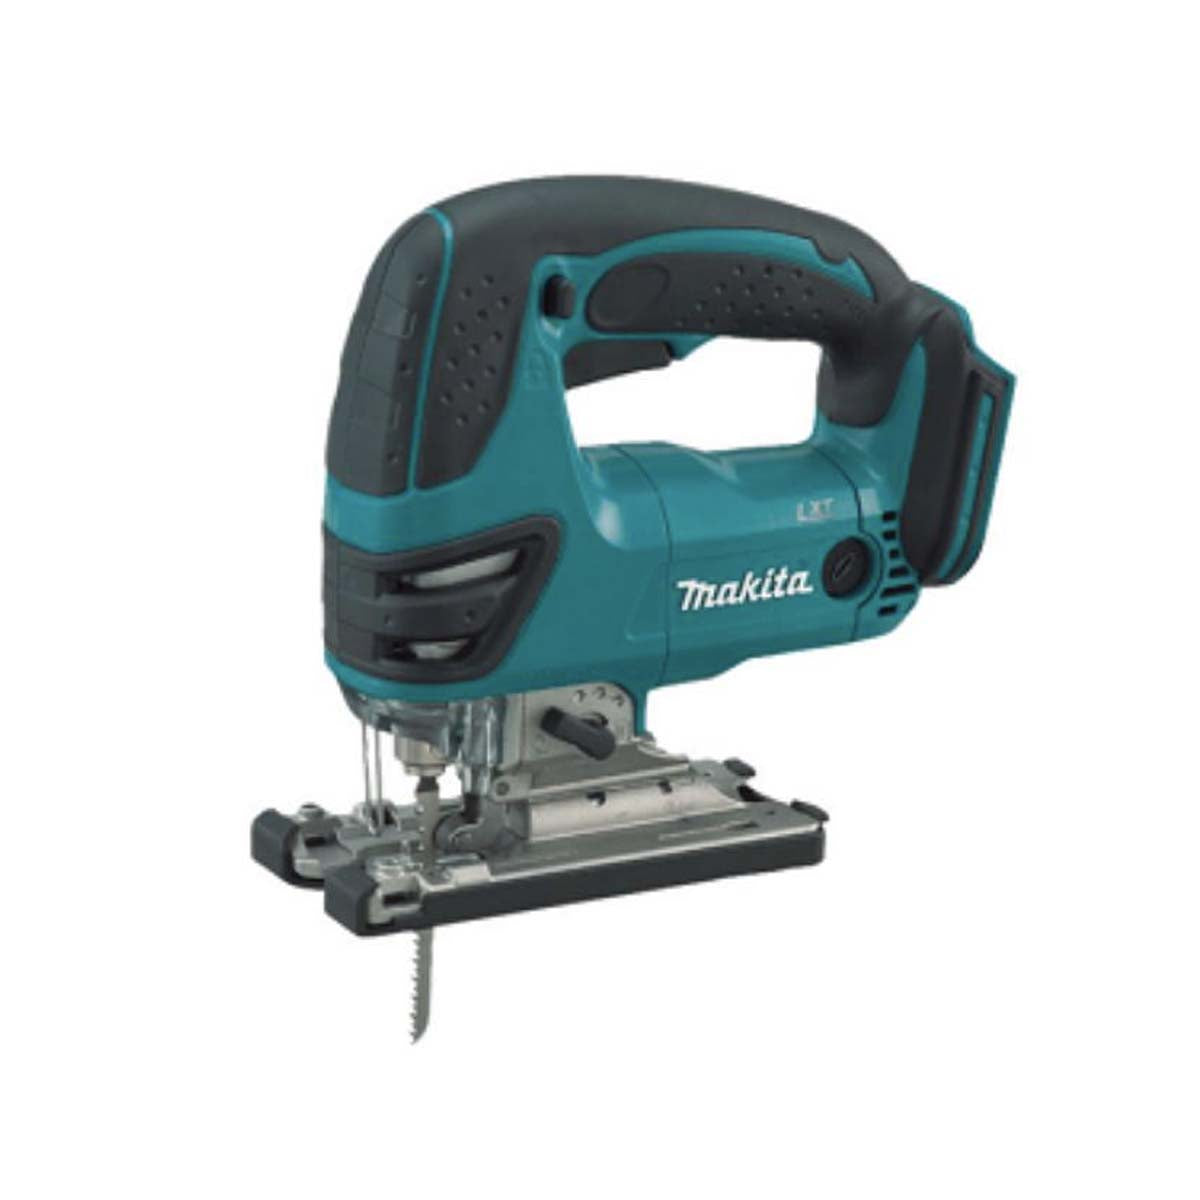 Makita Mobile Jig Saw 18V LXT - Bare Unit (DJV180Z)